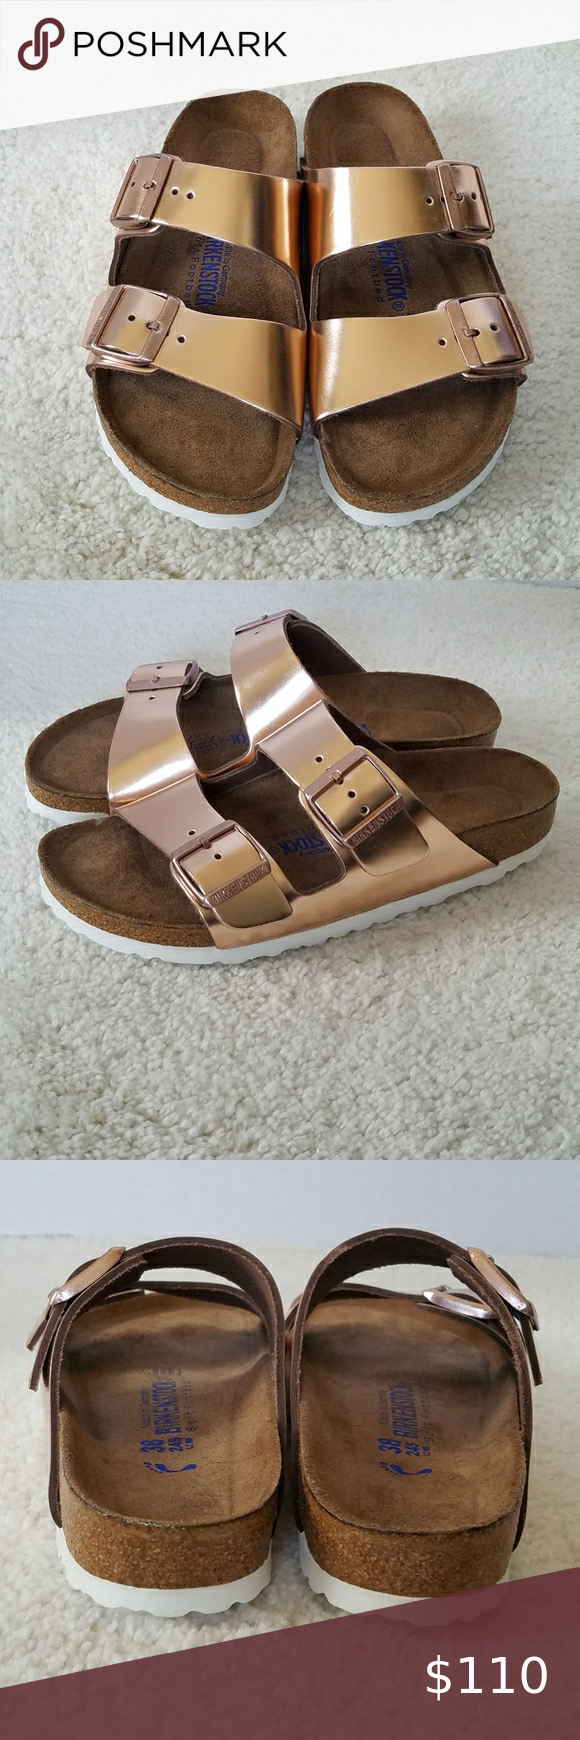 Photo of Birkenstock Arizona Metallic Rose Gold Sandals Birkenstock Arizona Metallic Rose …